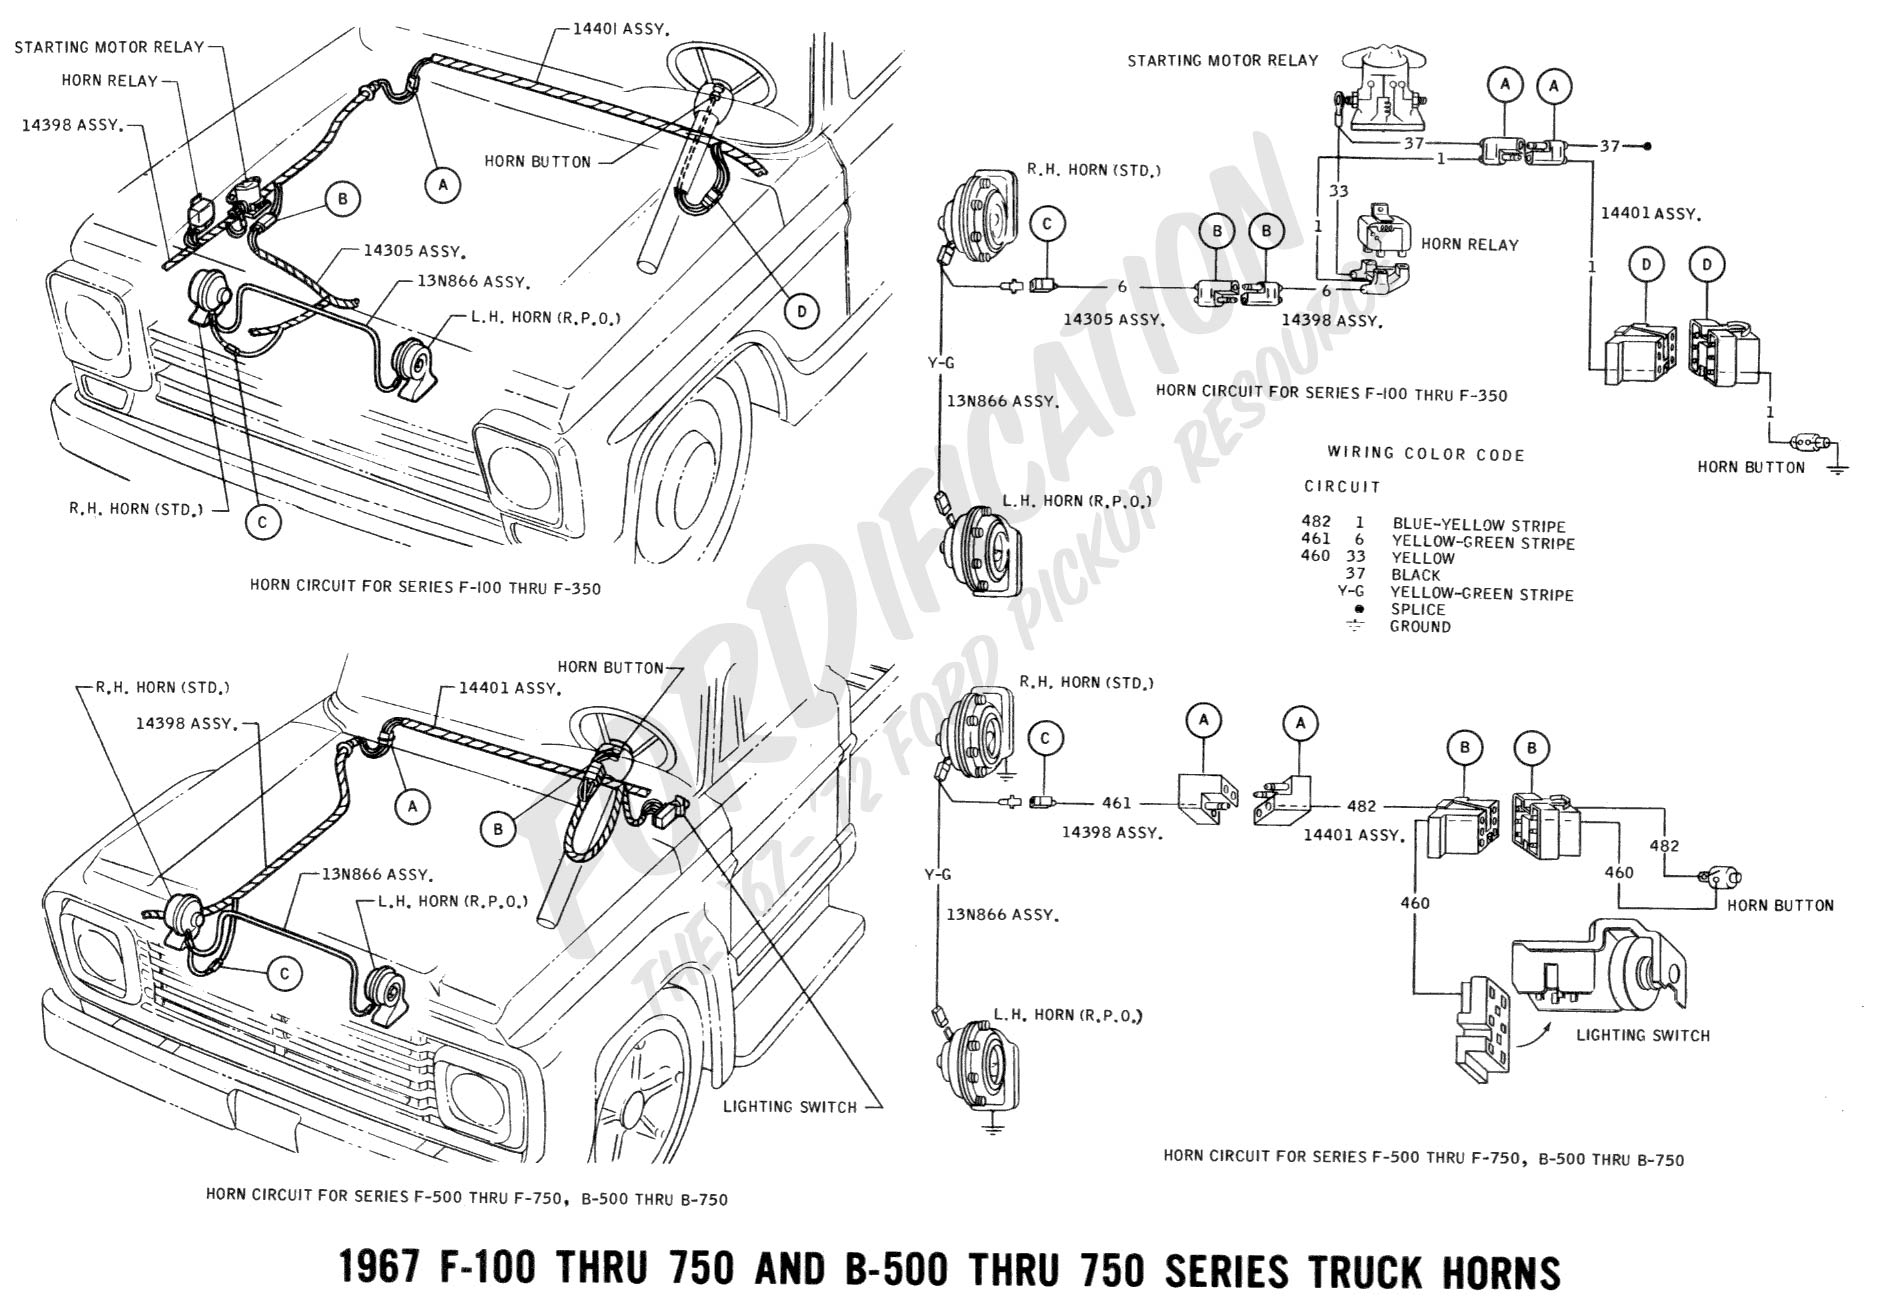 1967 Ford F100 Turn Signal Wiring Diagram - Wiring Diagrams F Turn Signal Wiring Diagram on